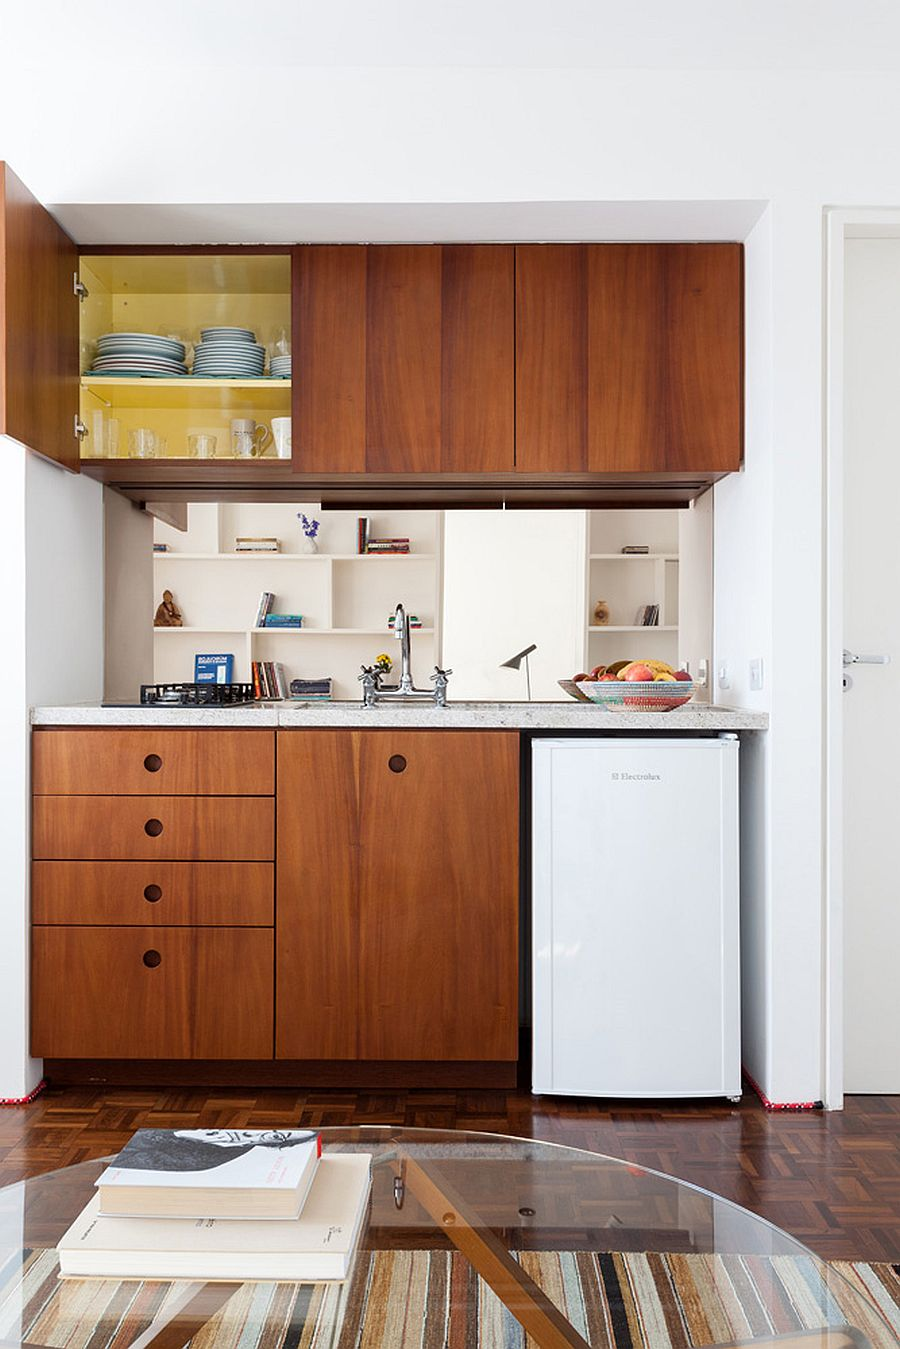 Wooden cabinets bring warmth to the small studio apartment in white